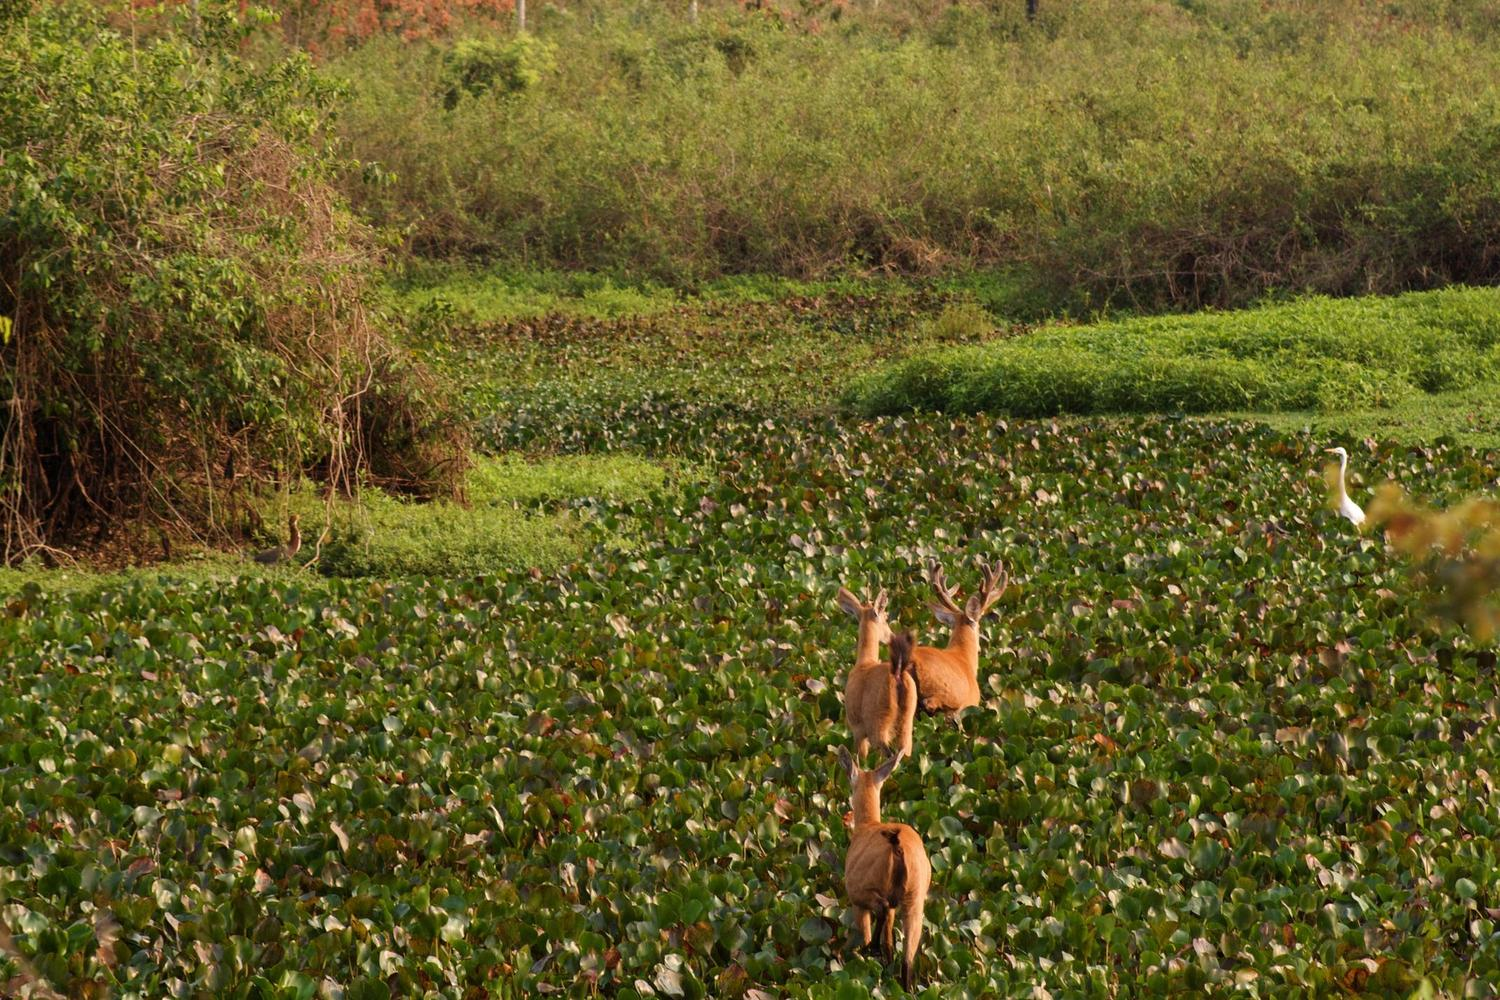 Deer crossing the wetlands of the Pantanal in Brazil